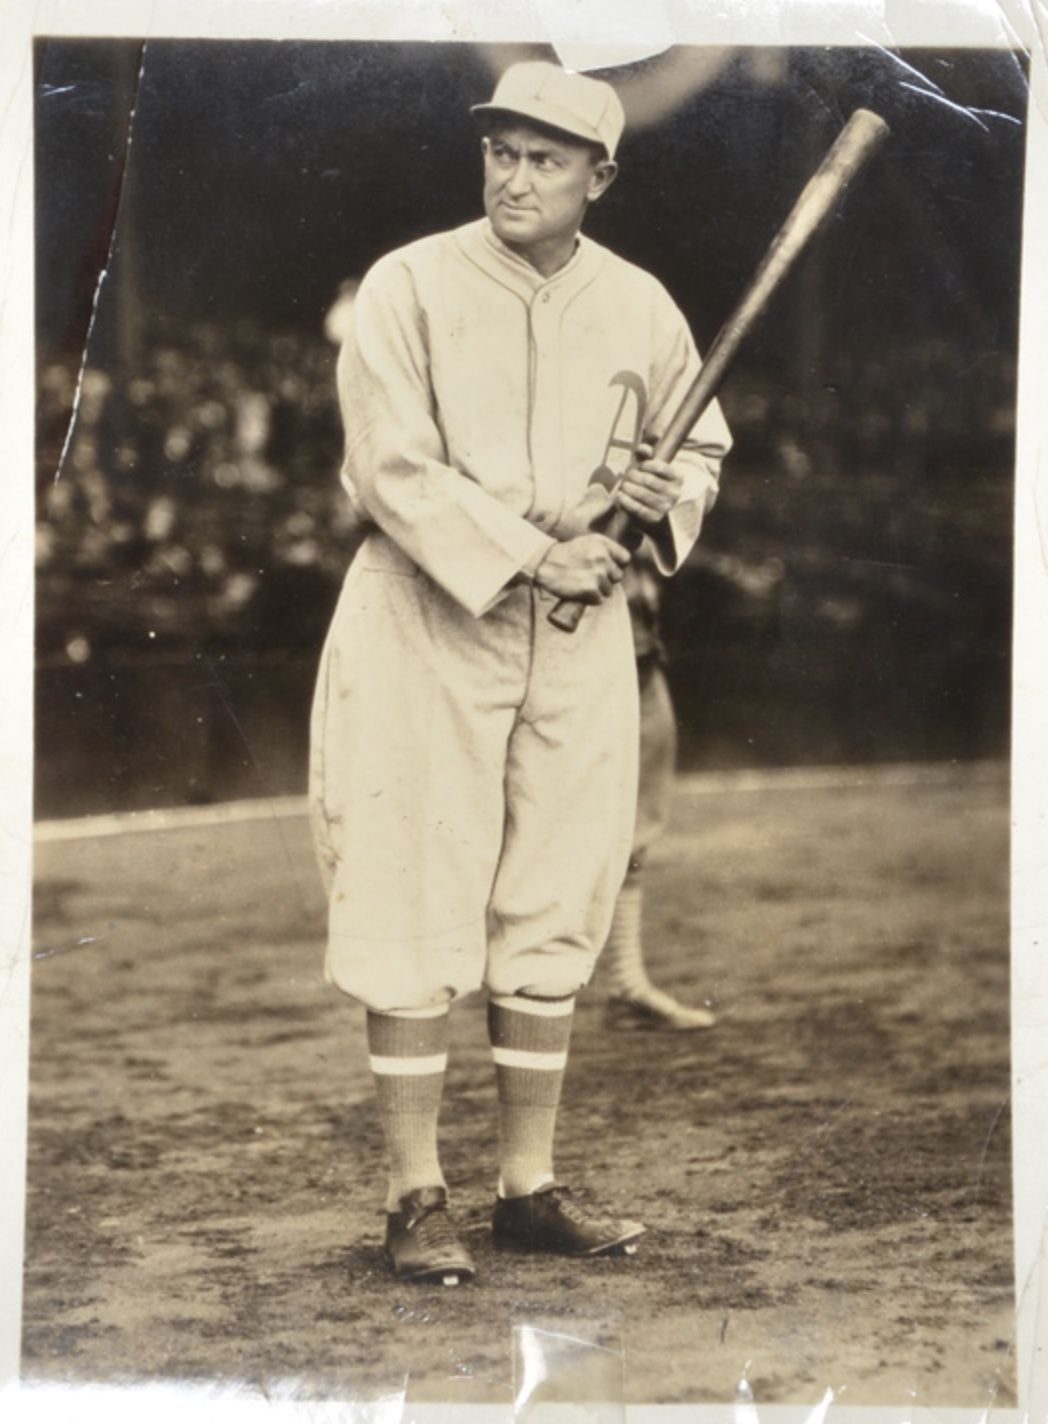 1928 ty cobb original photo used for his 1928 star player